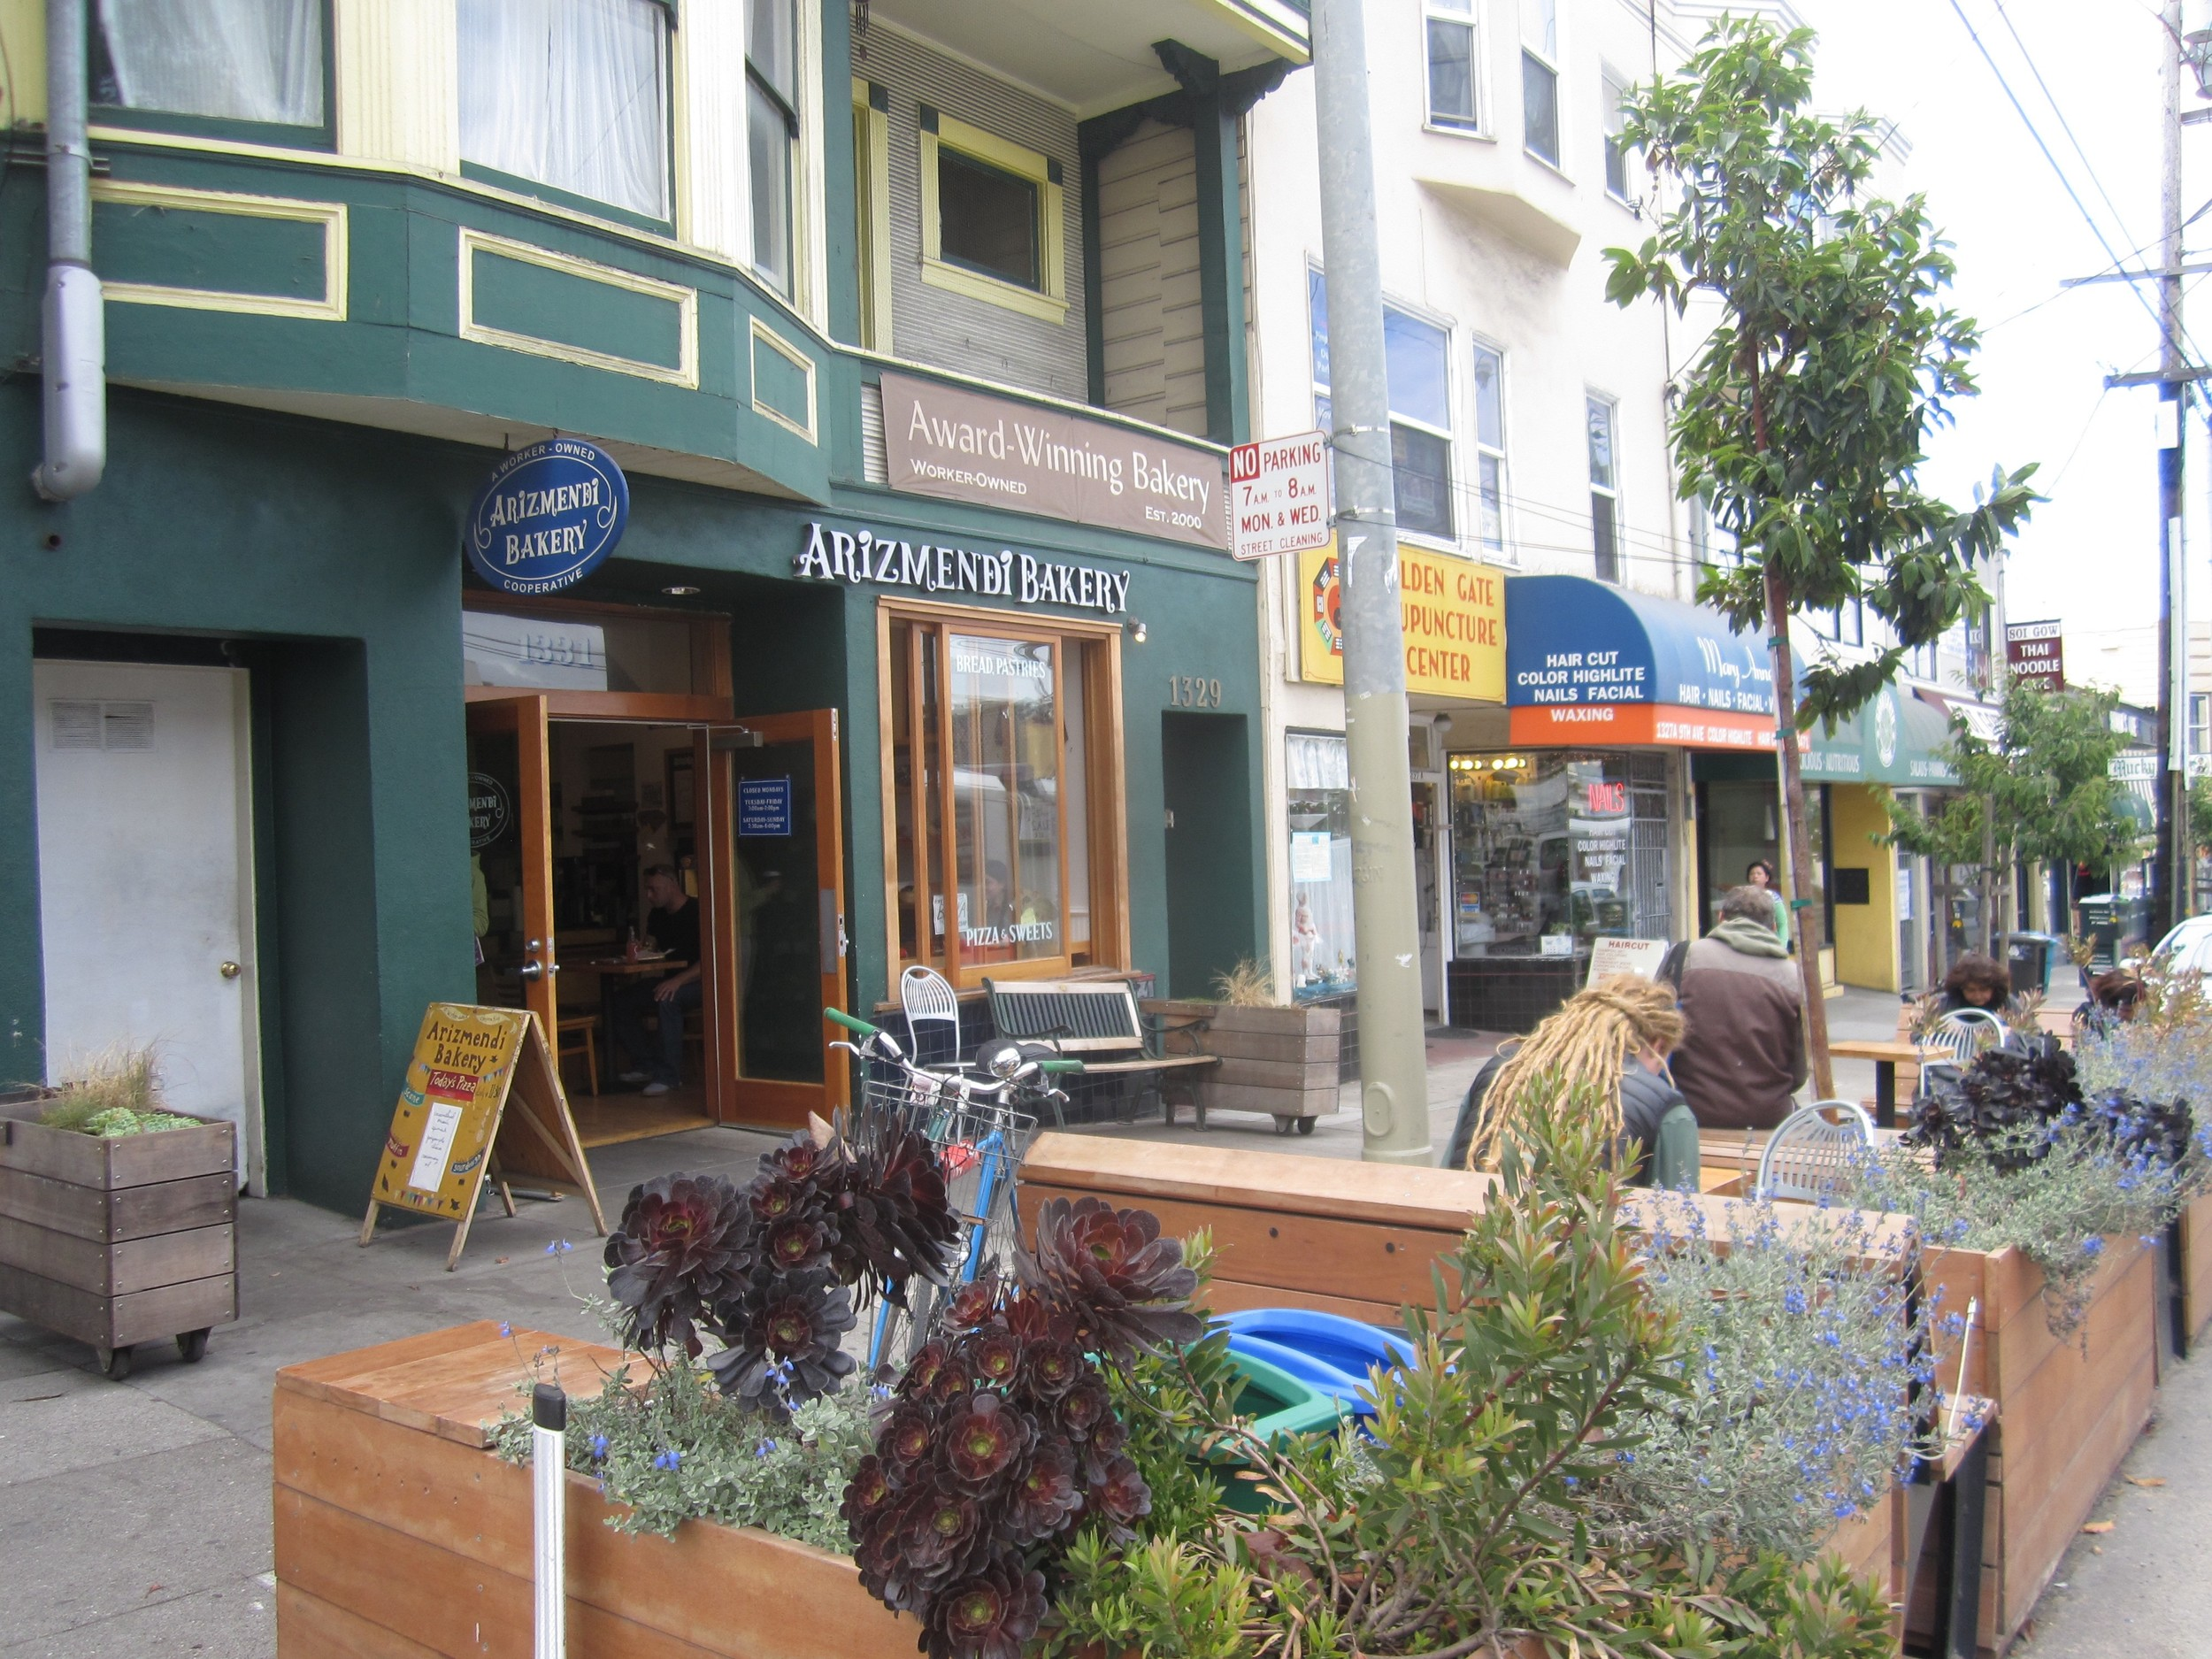 Lines form early in the morning for the mouth-watering pastries and breads baked daily at Arizmendi Bakery Cooperative on 9th Avenue.